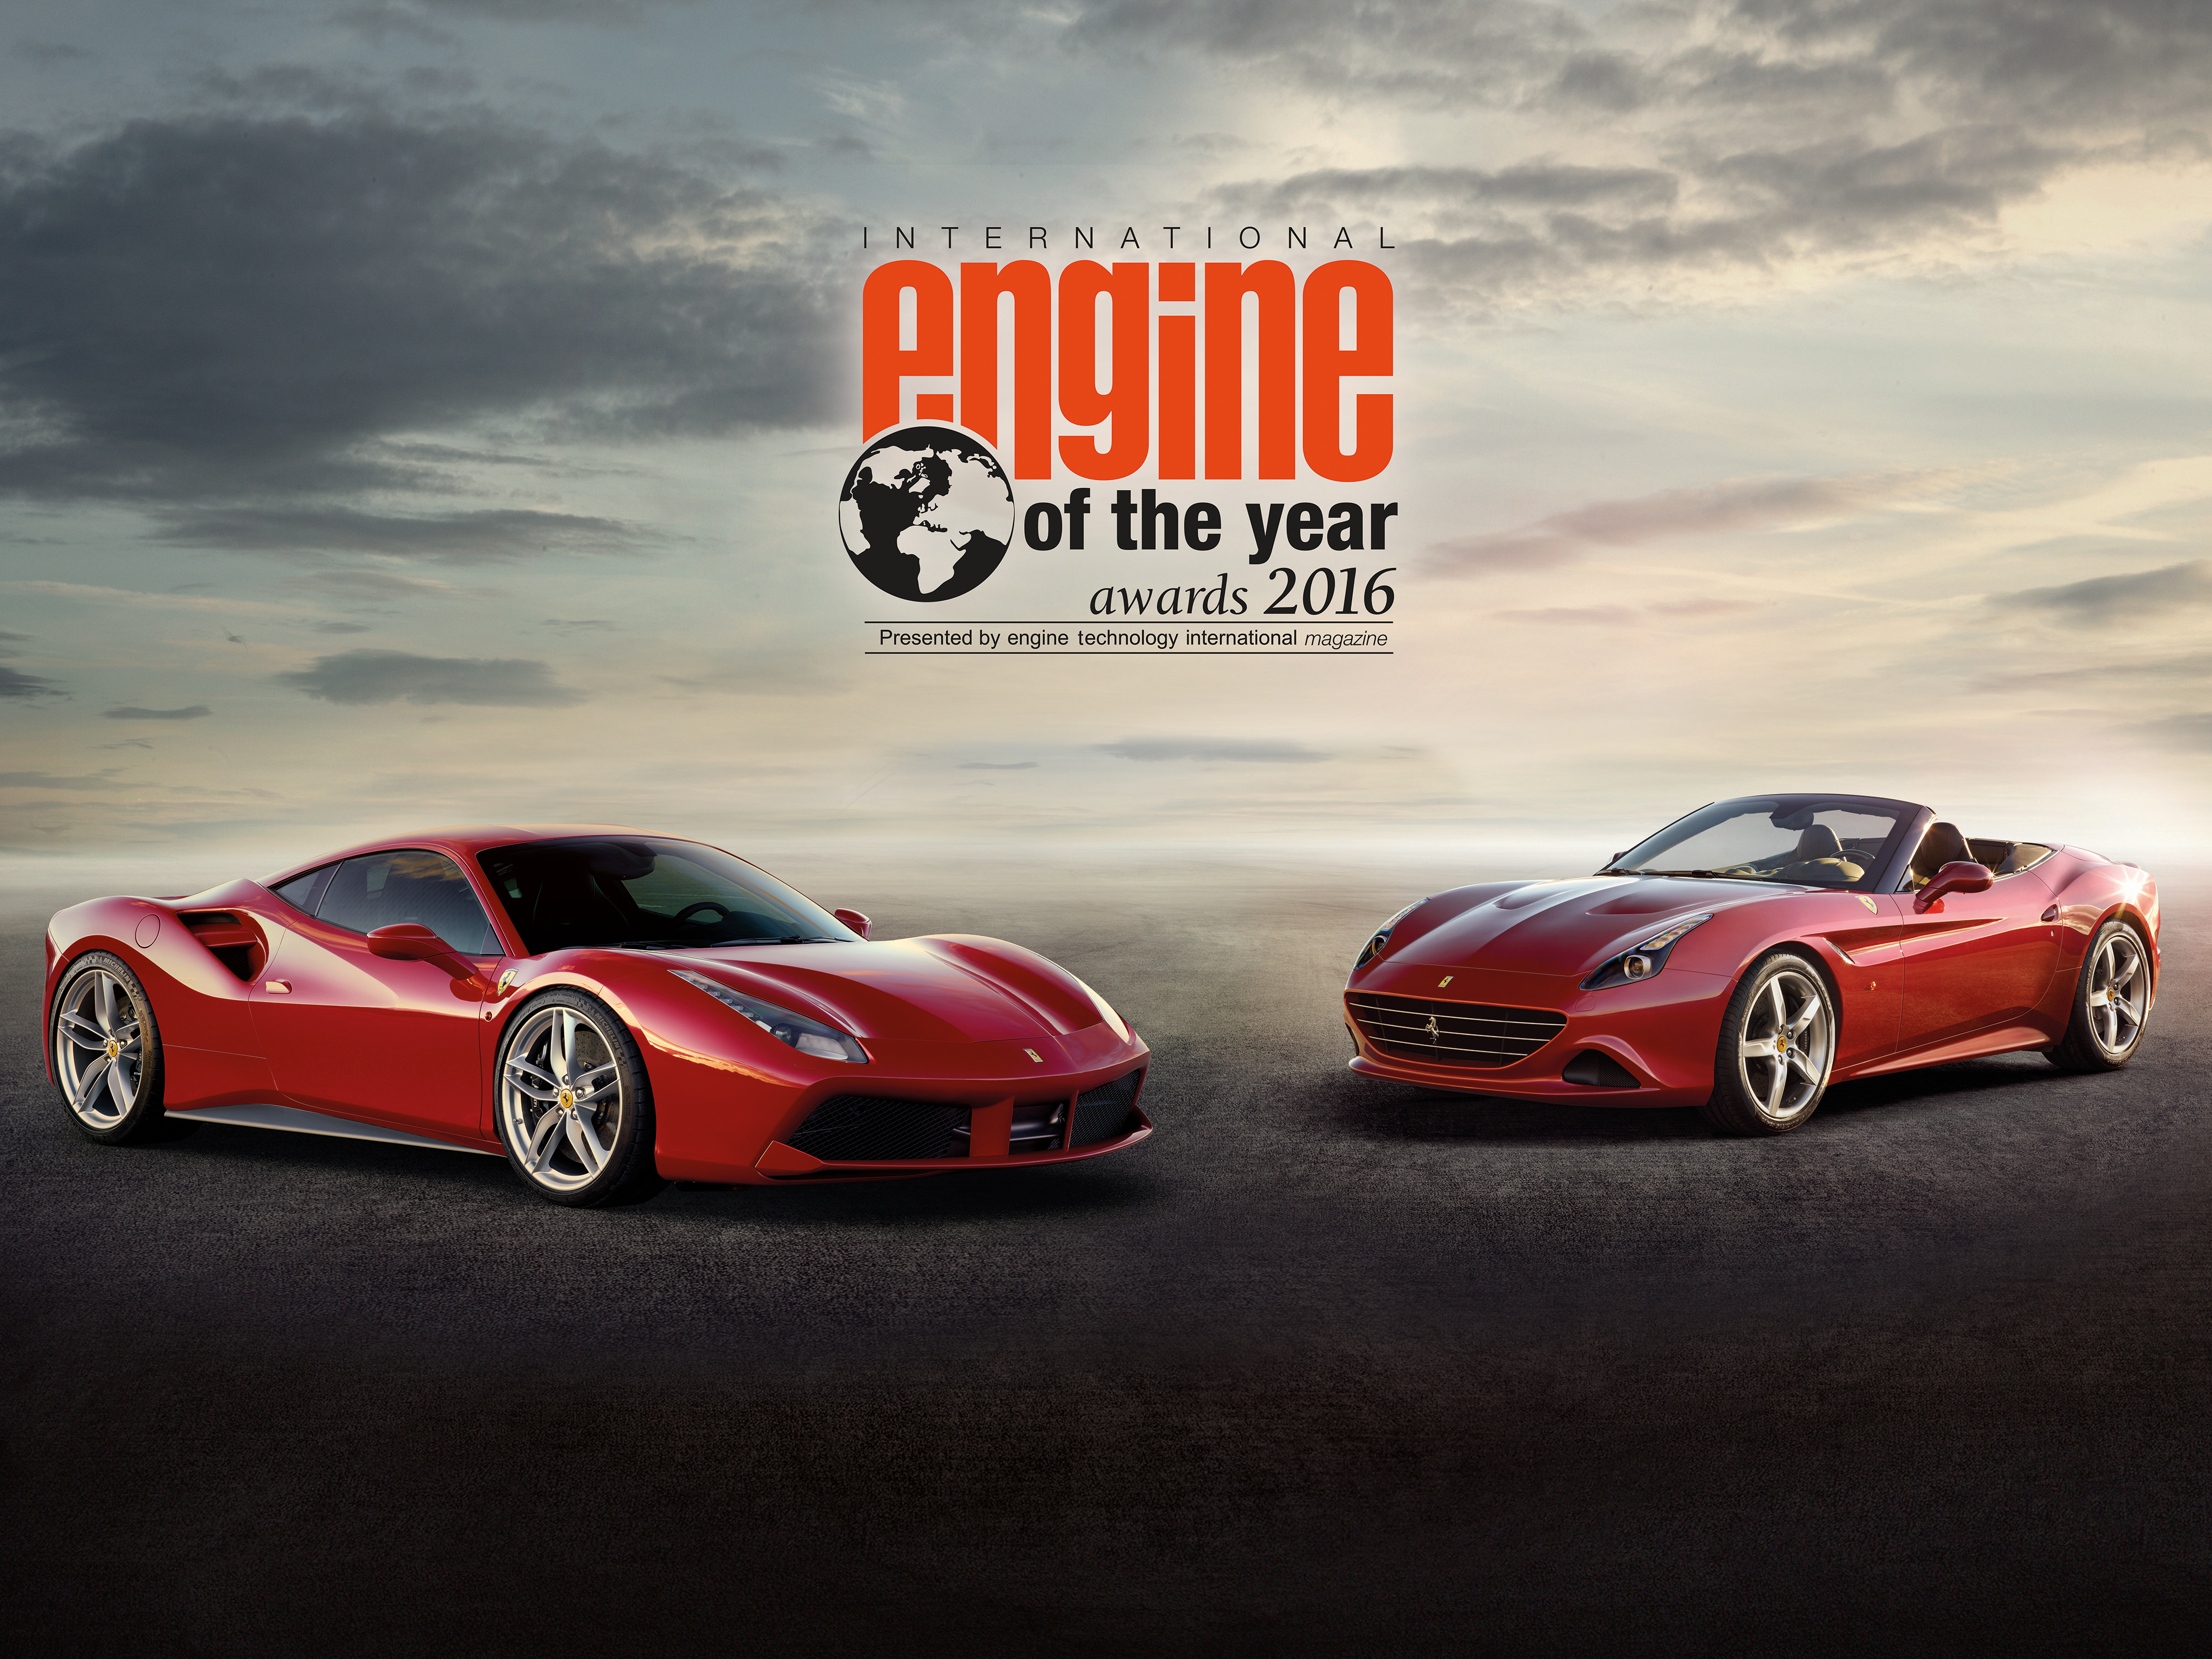 160377-car-Ferraris-turbo-charged-V8-is-the-Engine-of-the-Year